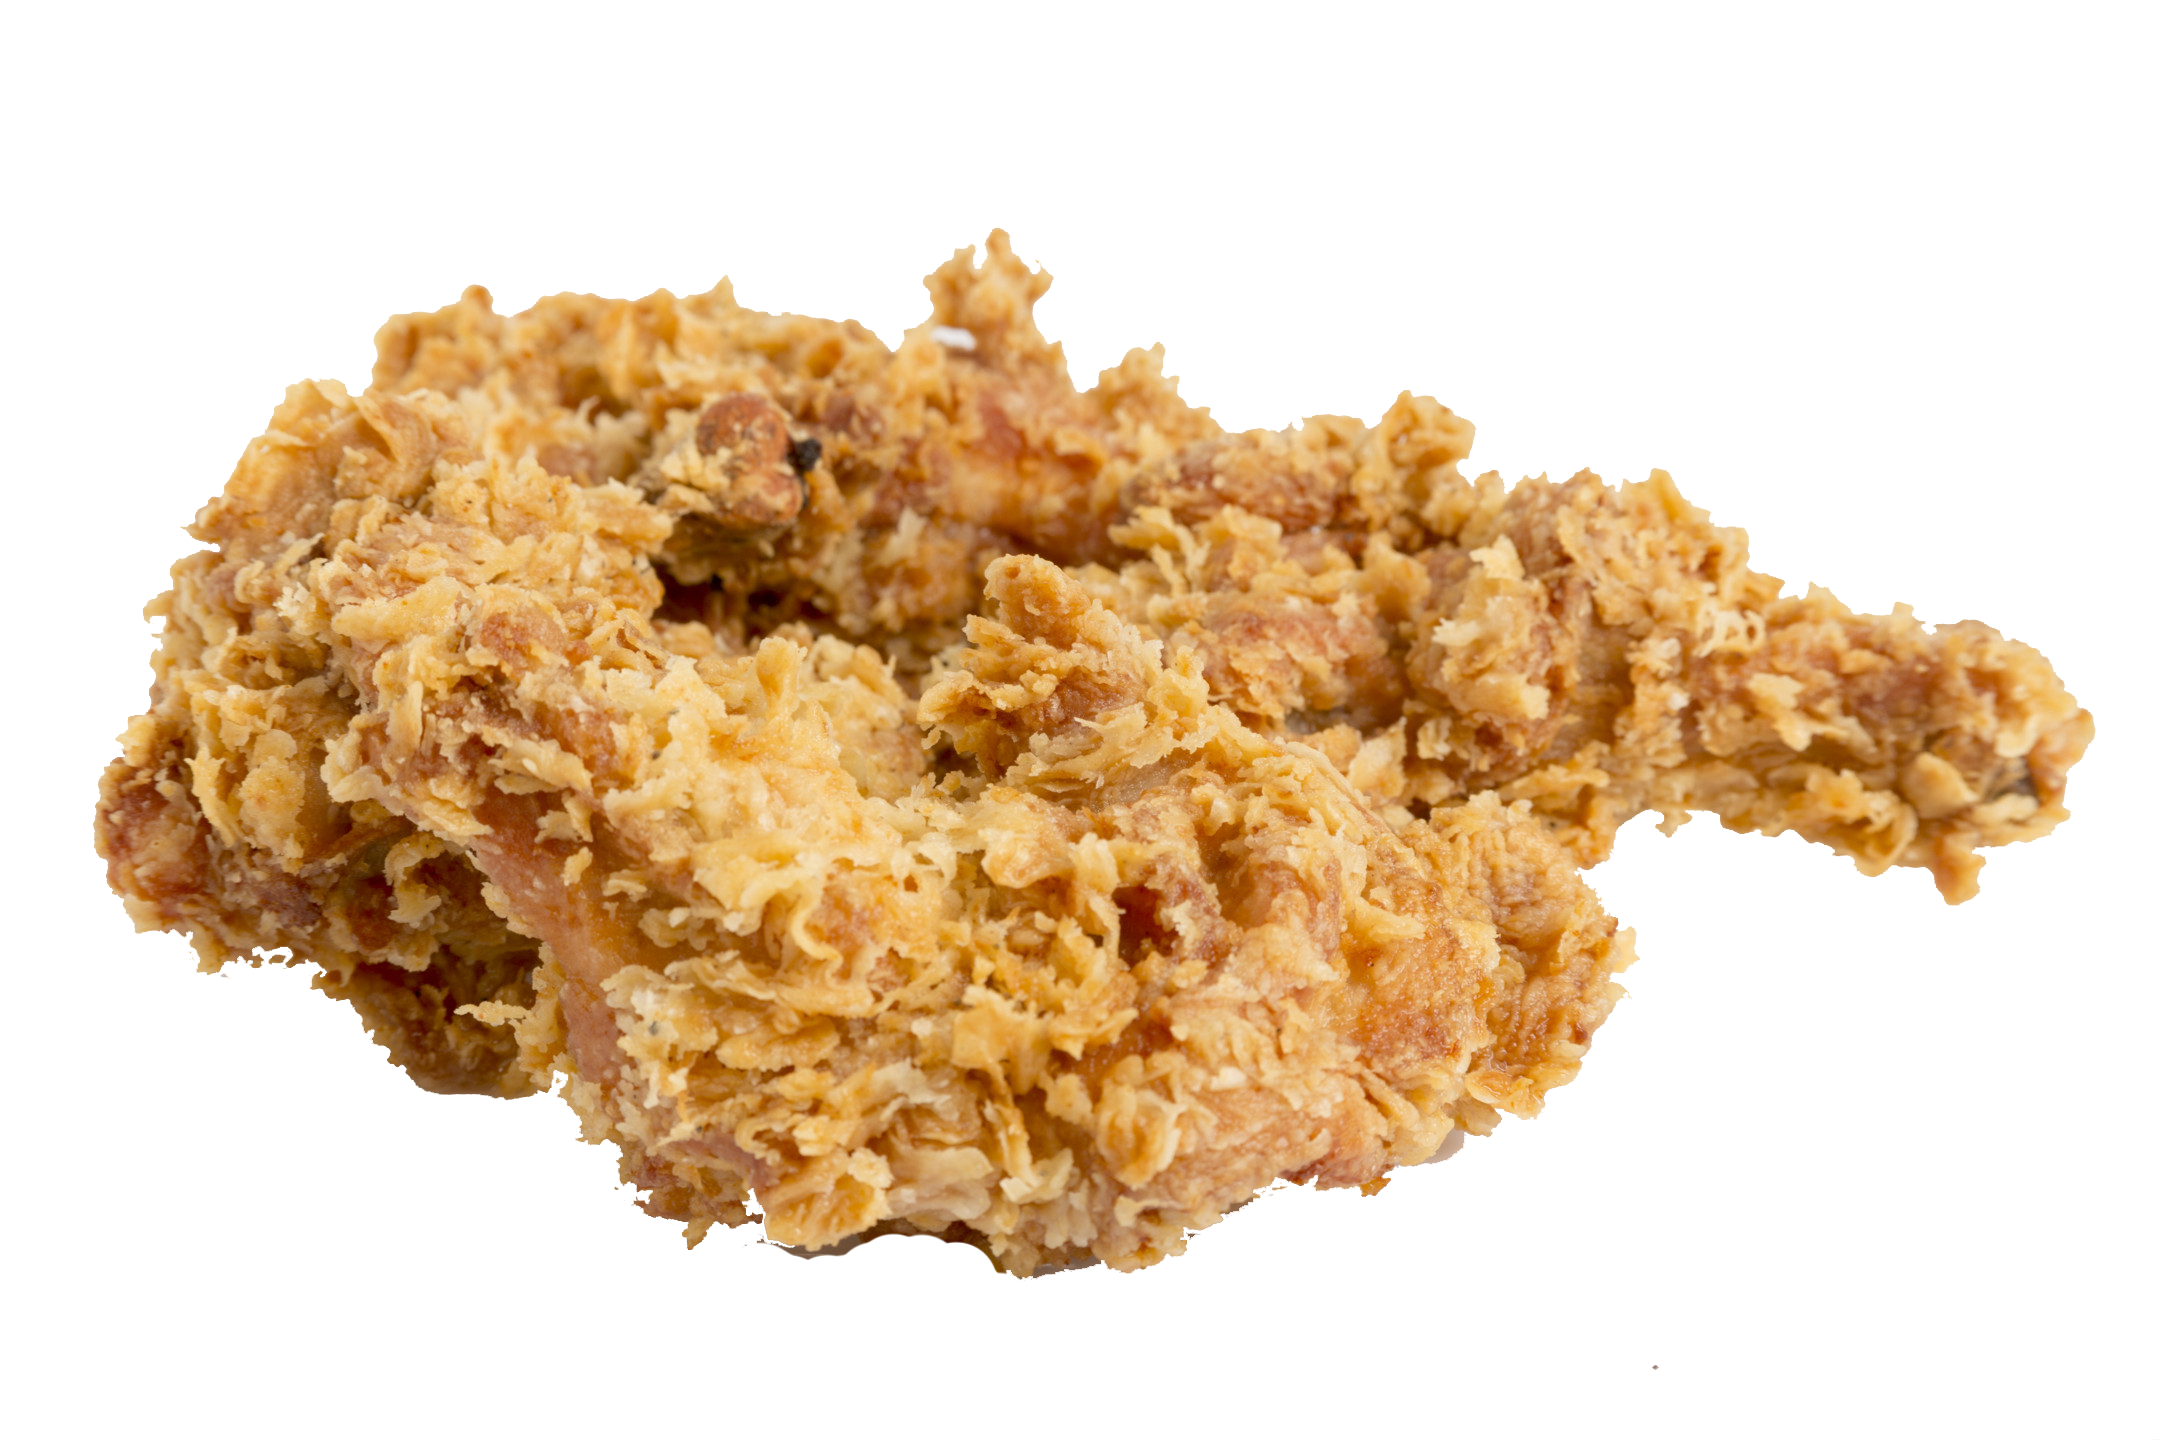 Fried chicken png. Cripsy pcs morine bakery